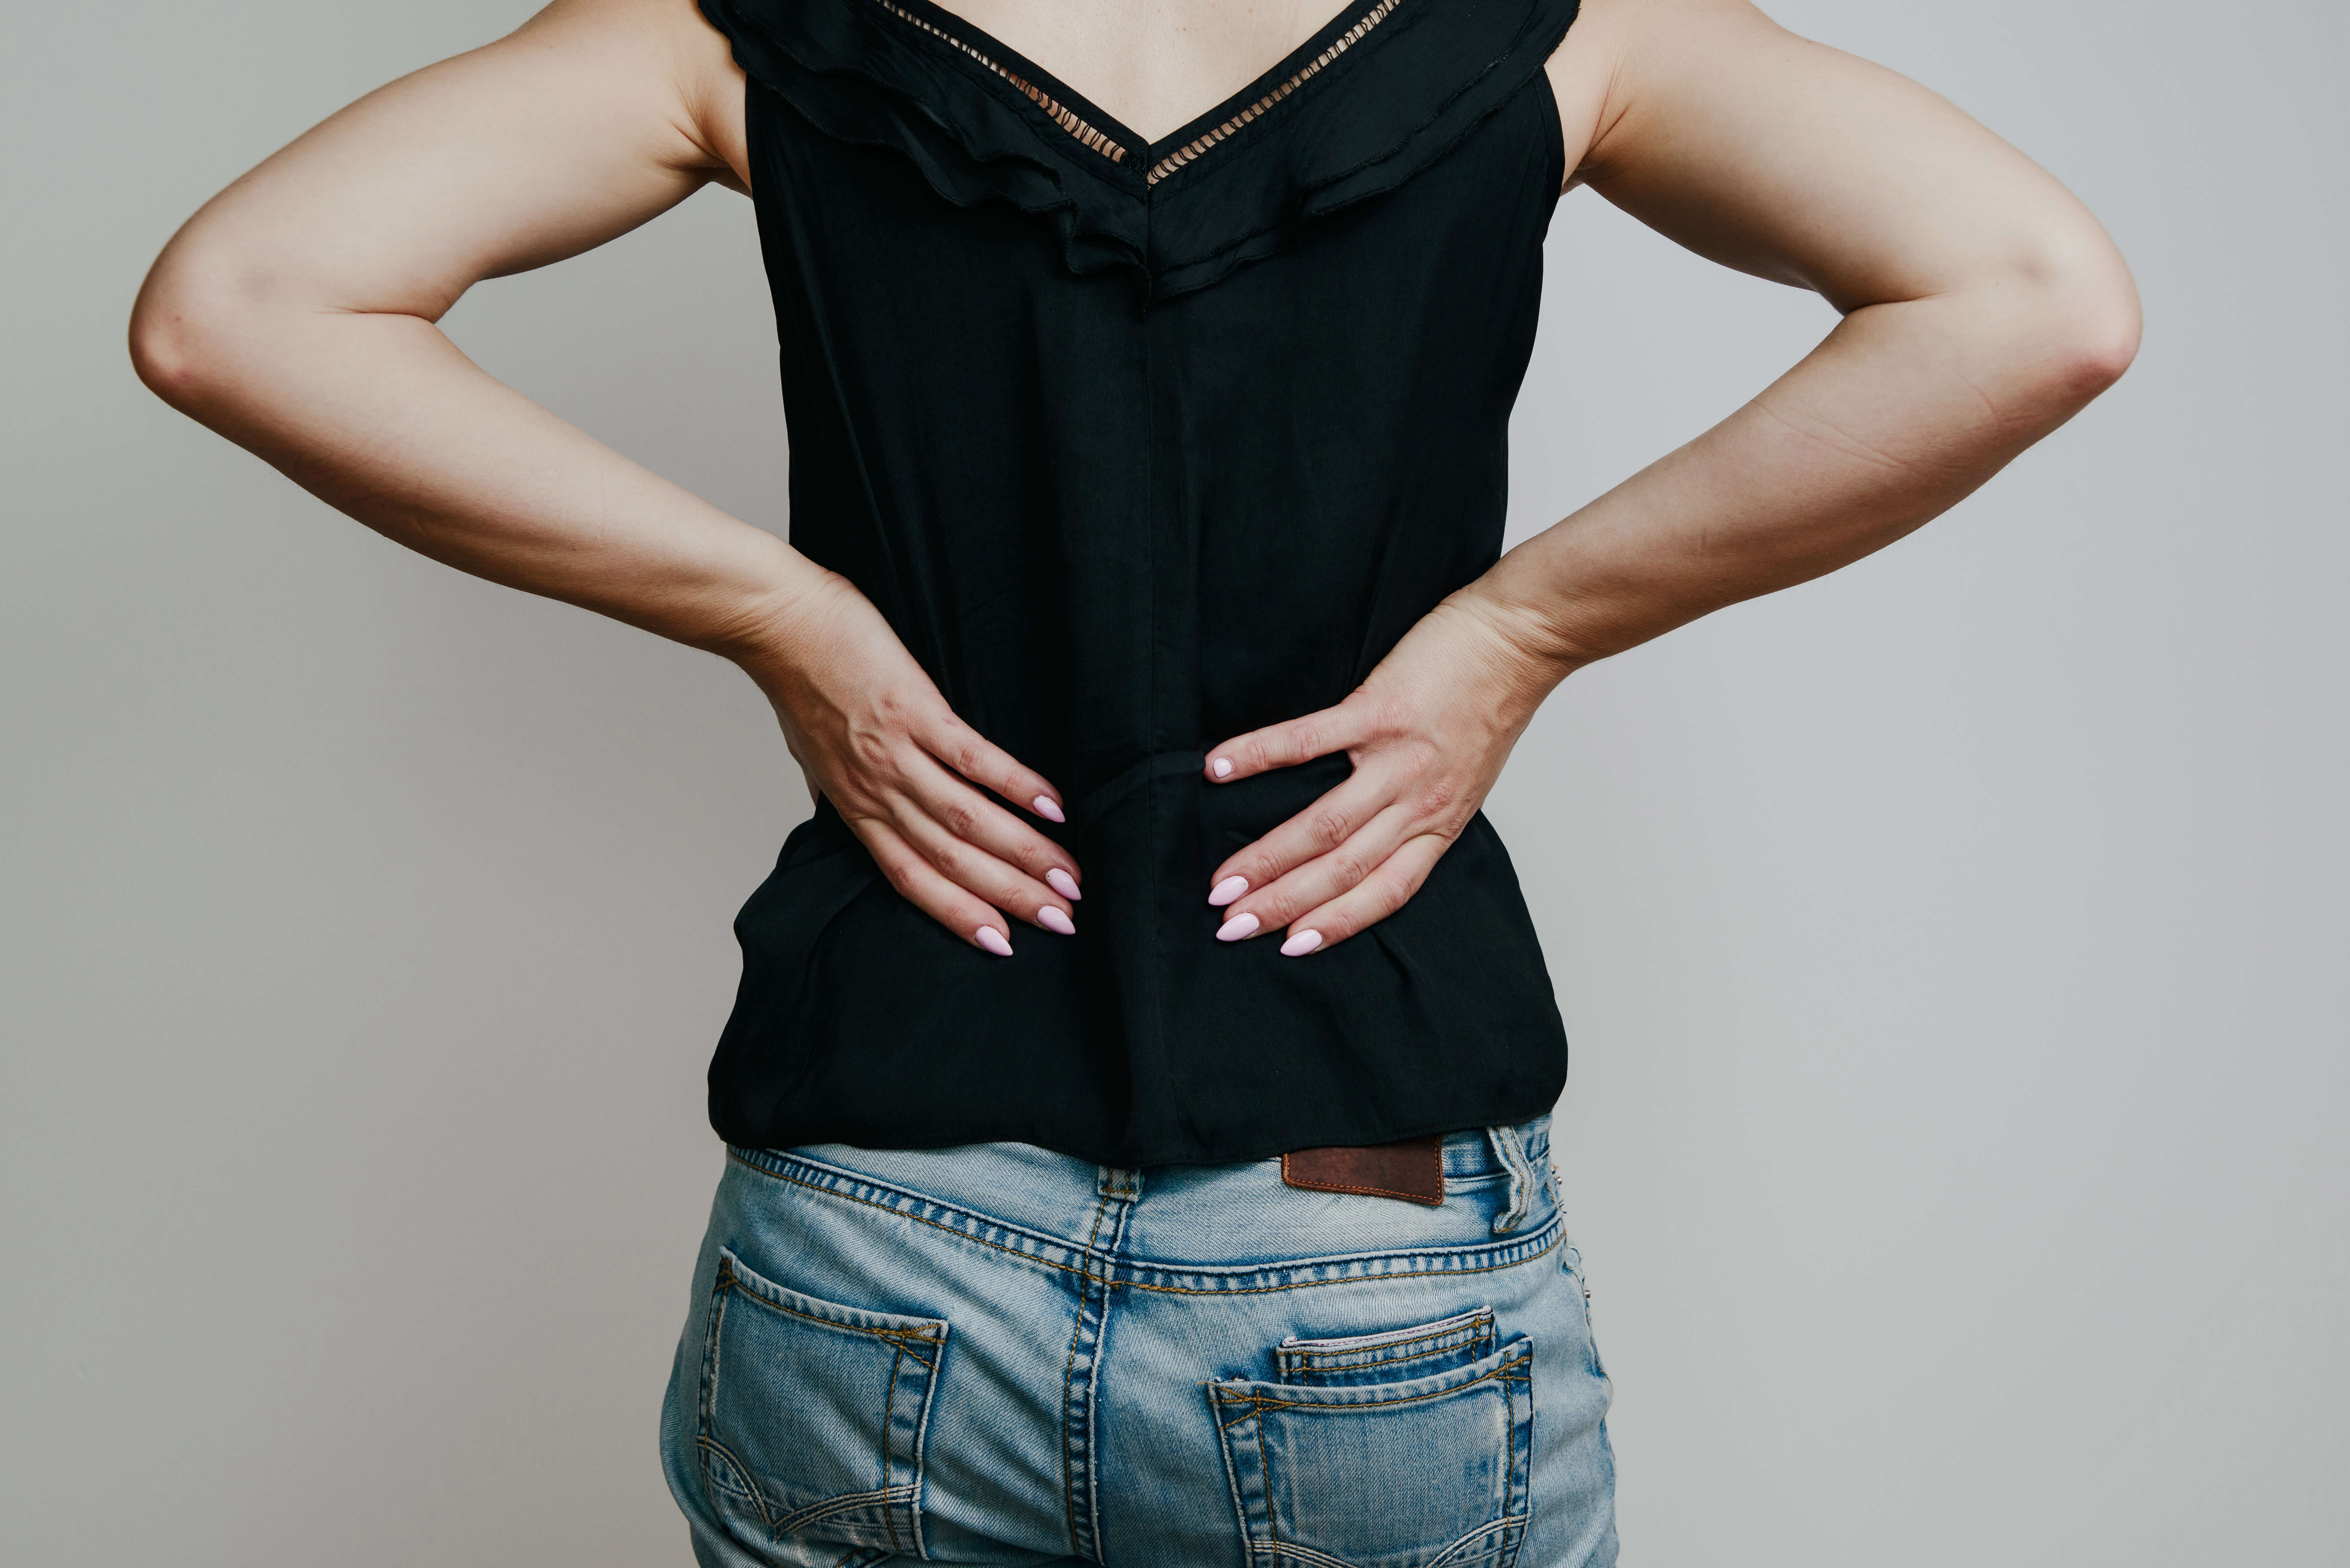 Severe Back Pain Treatments